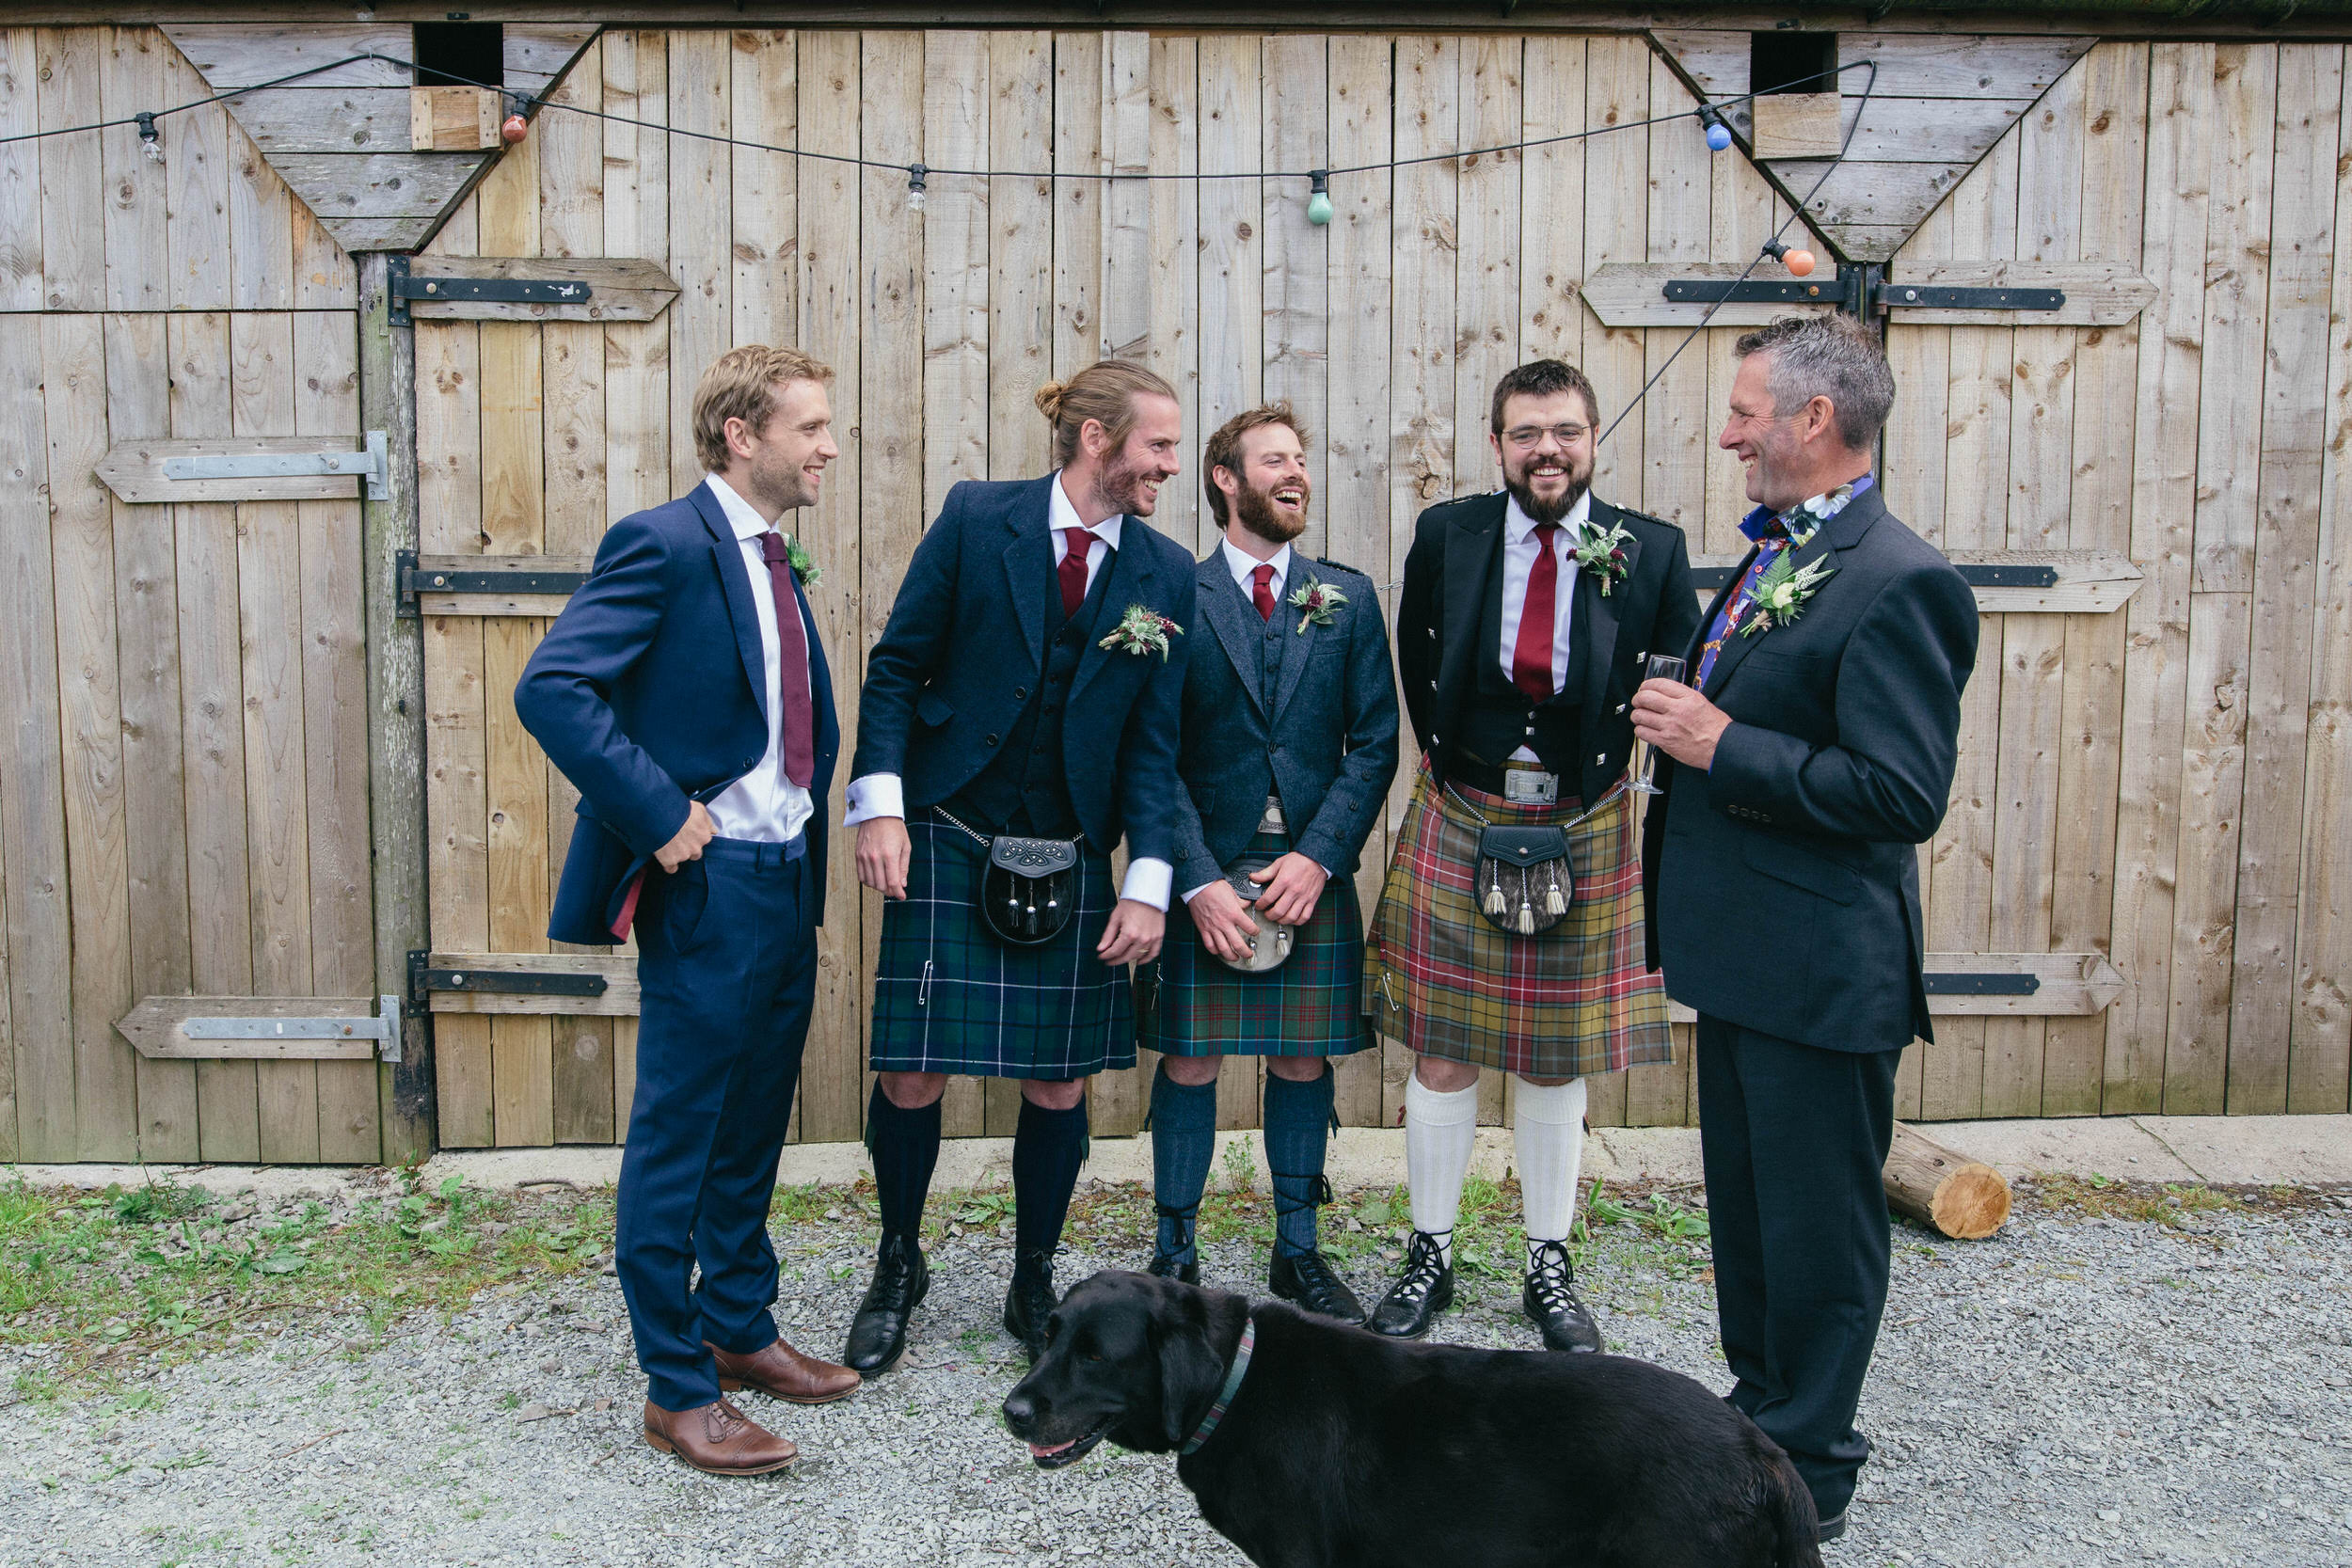 Alternative Quirky Wedding Photographer Scotland Borders Edinburgh 067.jpg